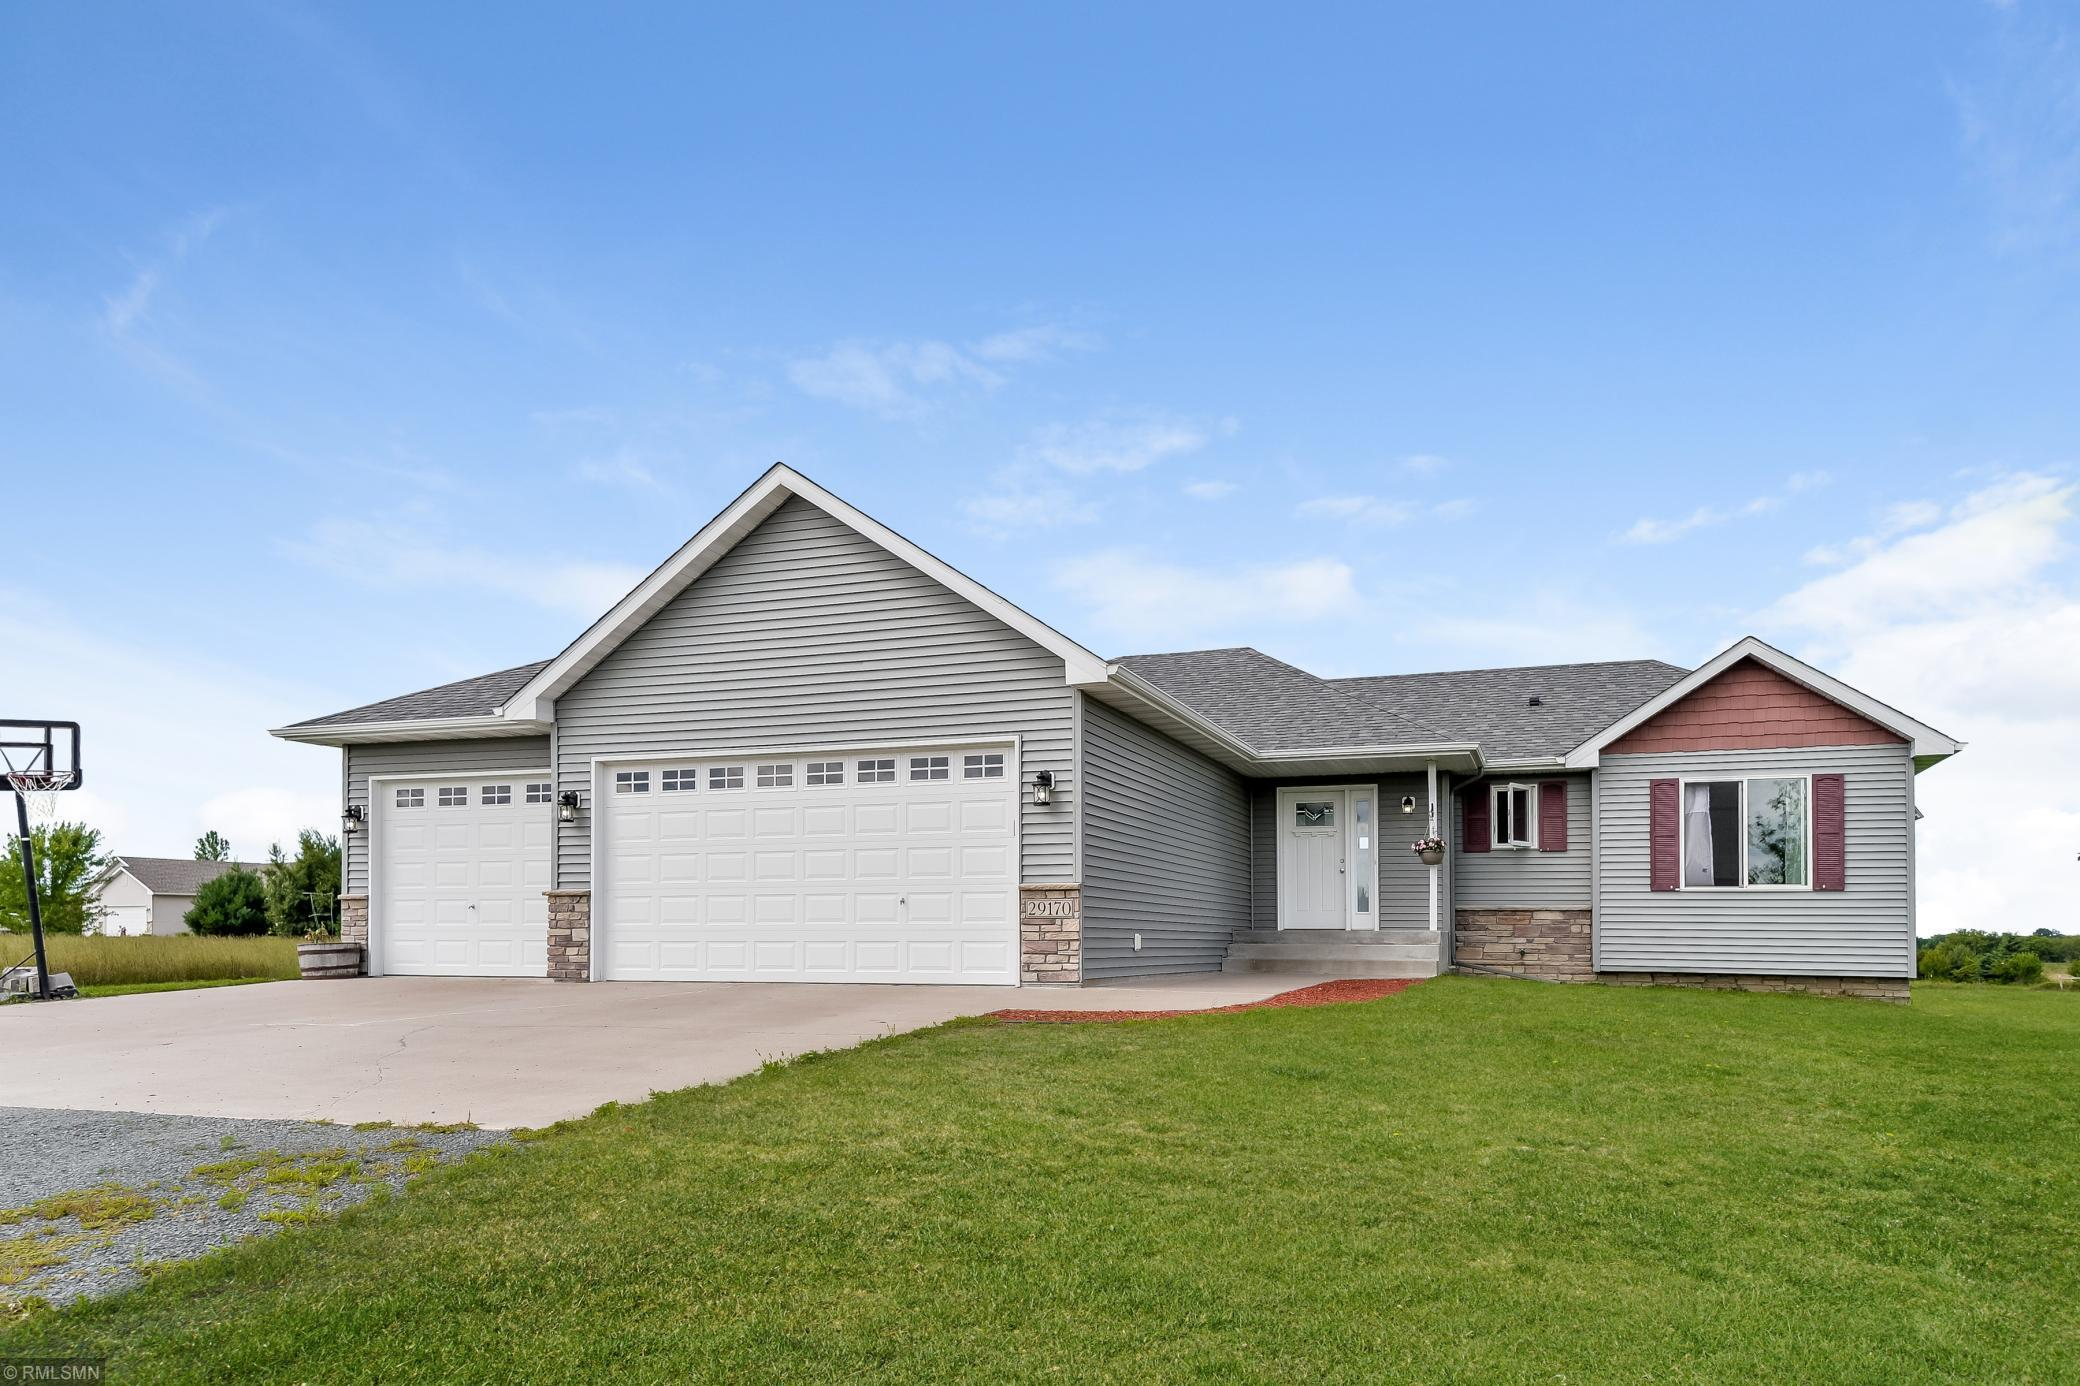 29170 Snow Goose Trail Property Photo - Franconia Twp, MN real estate listing